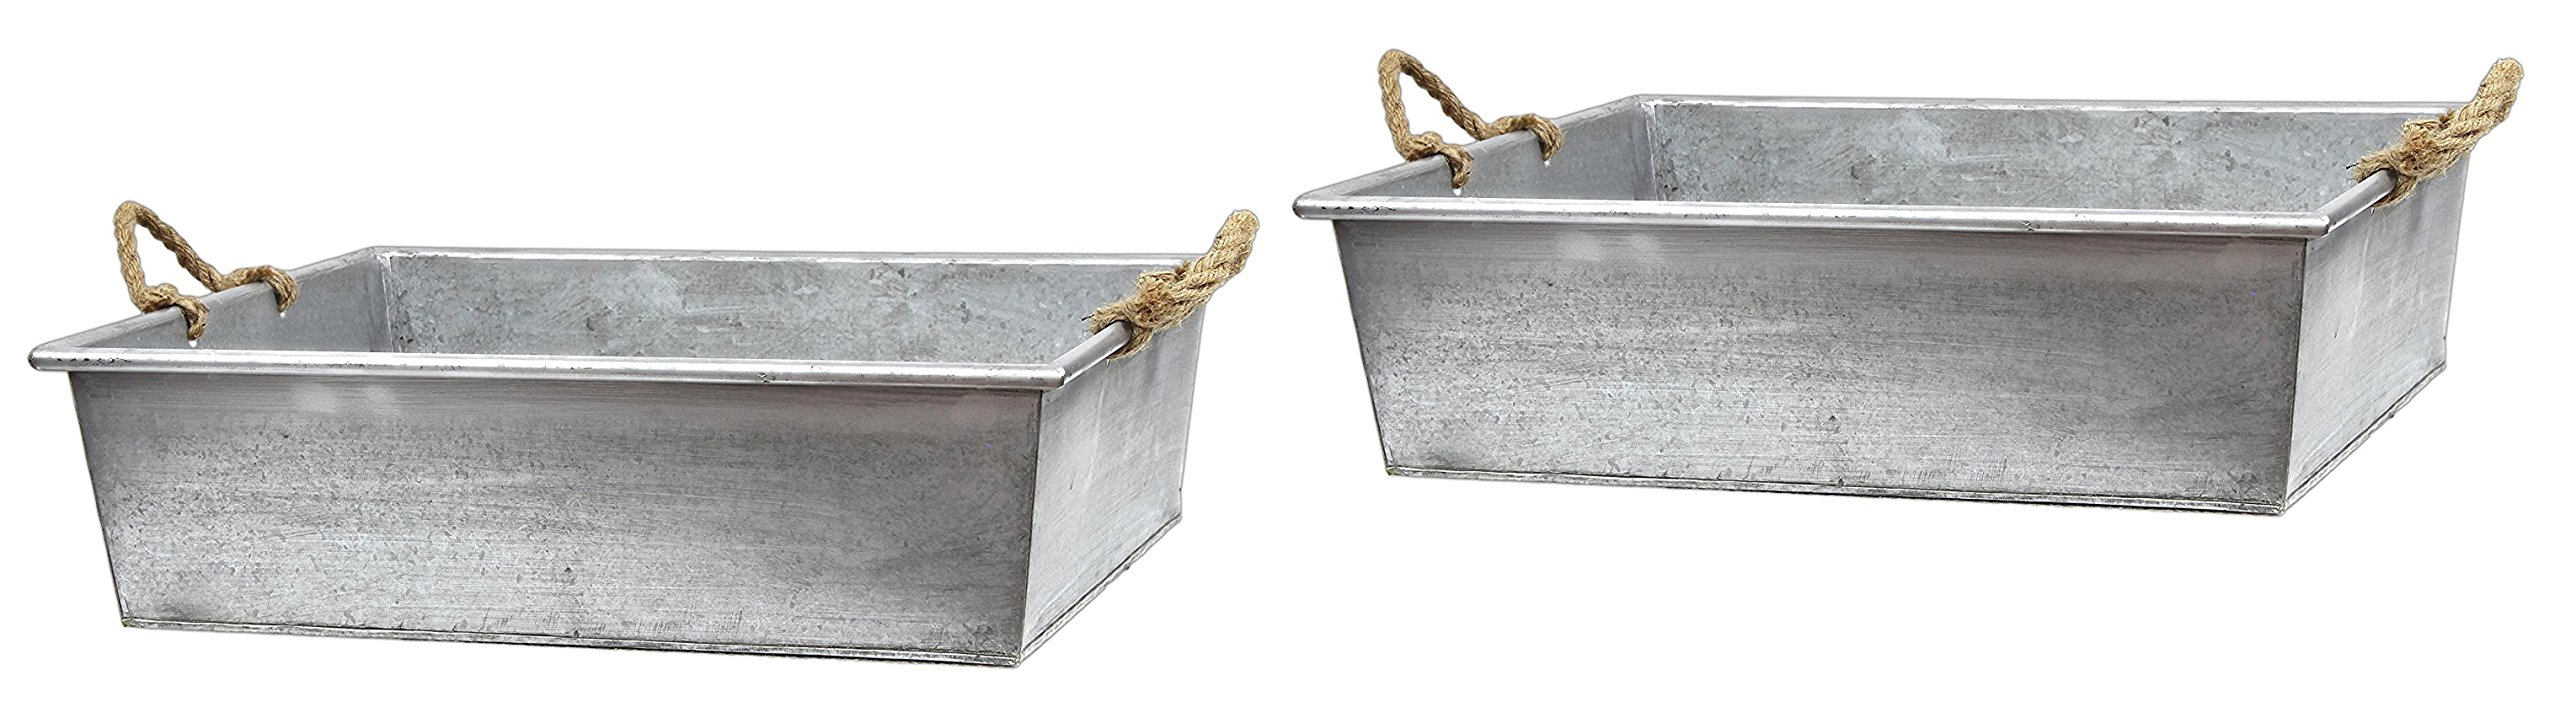 Lucky Winner Set of 2 Galvanized Metal Bucket Trays with Rope Handles 23''x19''